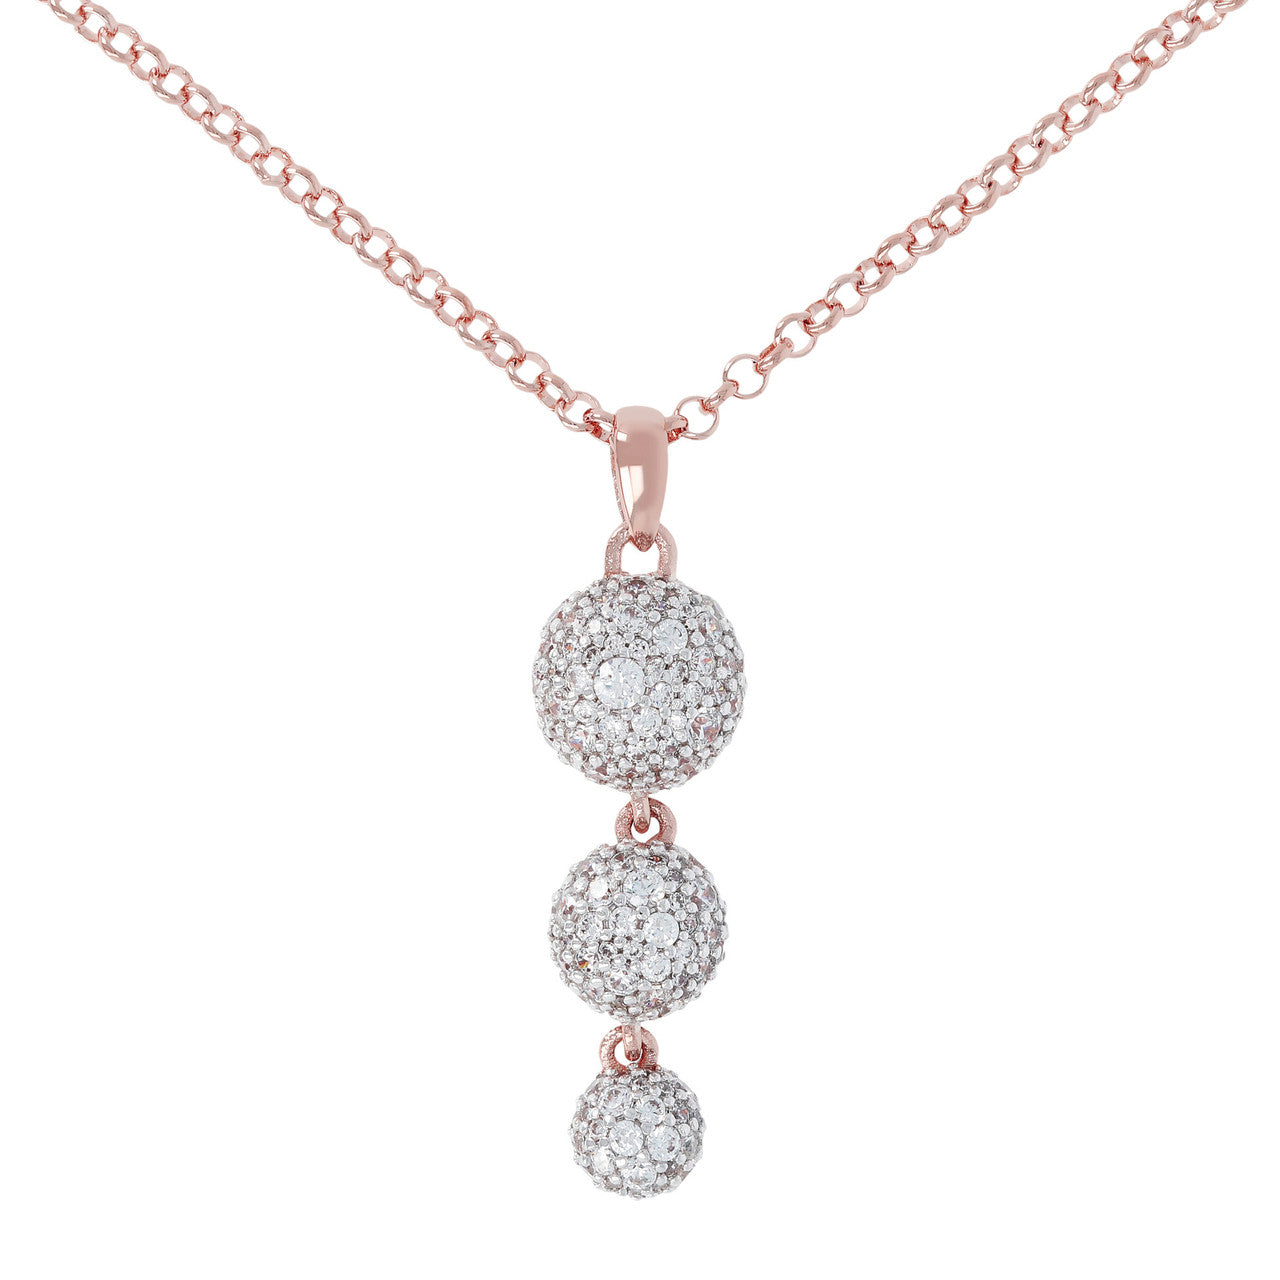 Trilogy Pave Necklace